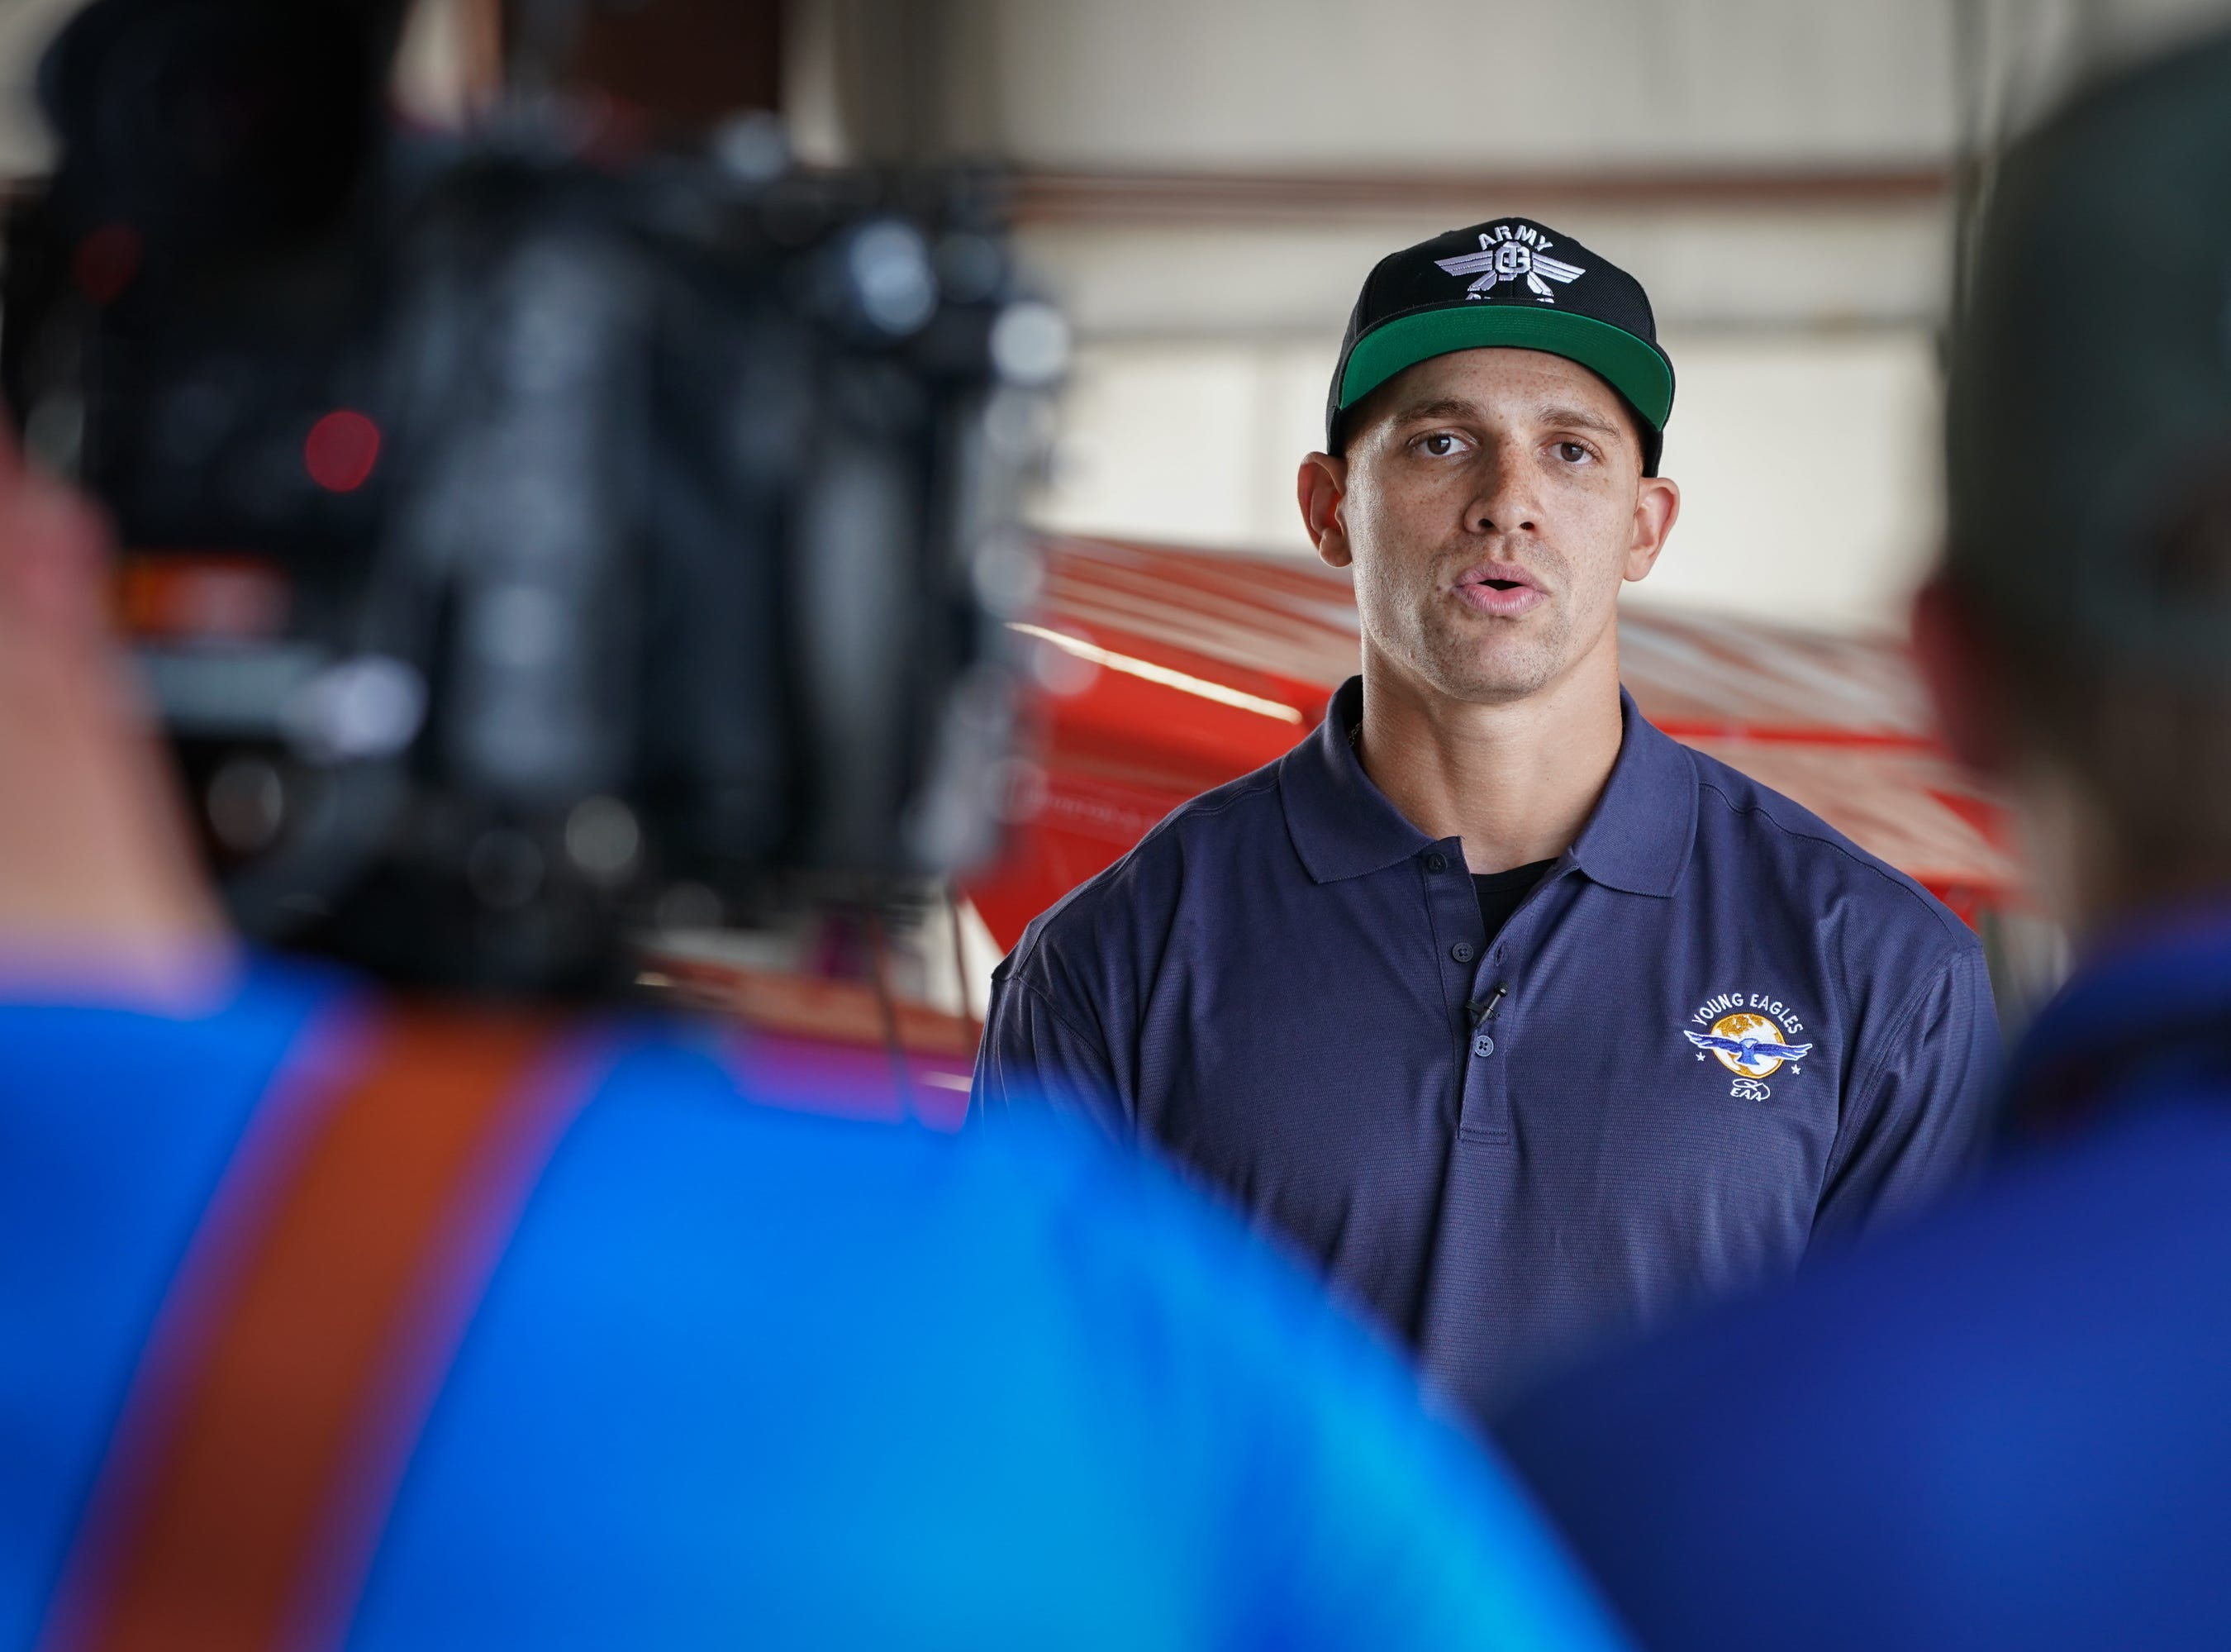 EAA announced  new Young Eagles co-chairman Jimmy Graham with a special flight Monday afternoon. Graham, a Pro Bowl player who is now a tight end with the Green Bay Packers, flew two Young Eagles with Chairman Sean D. Tucker.